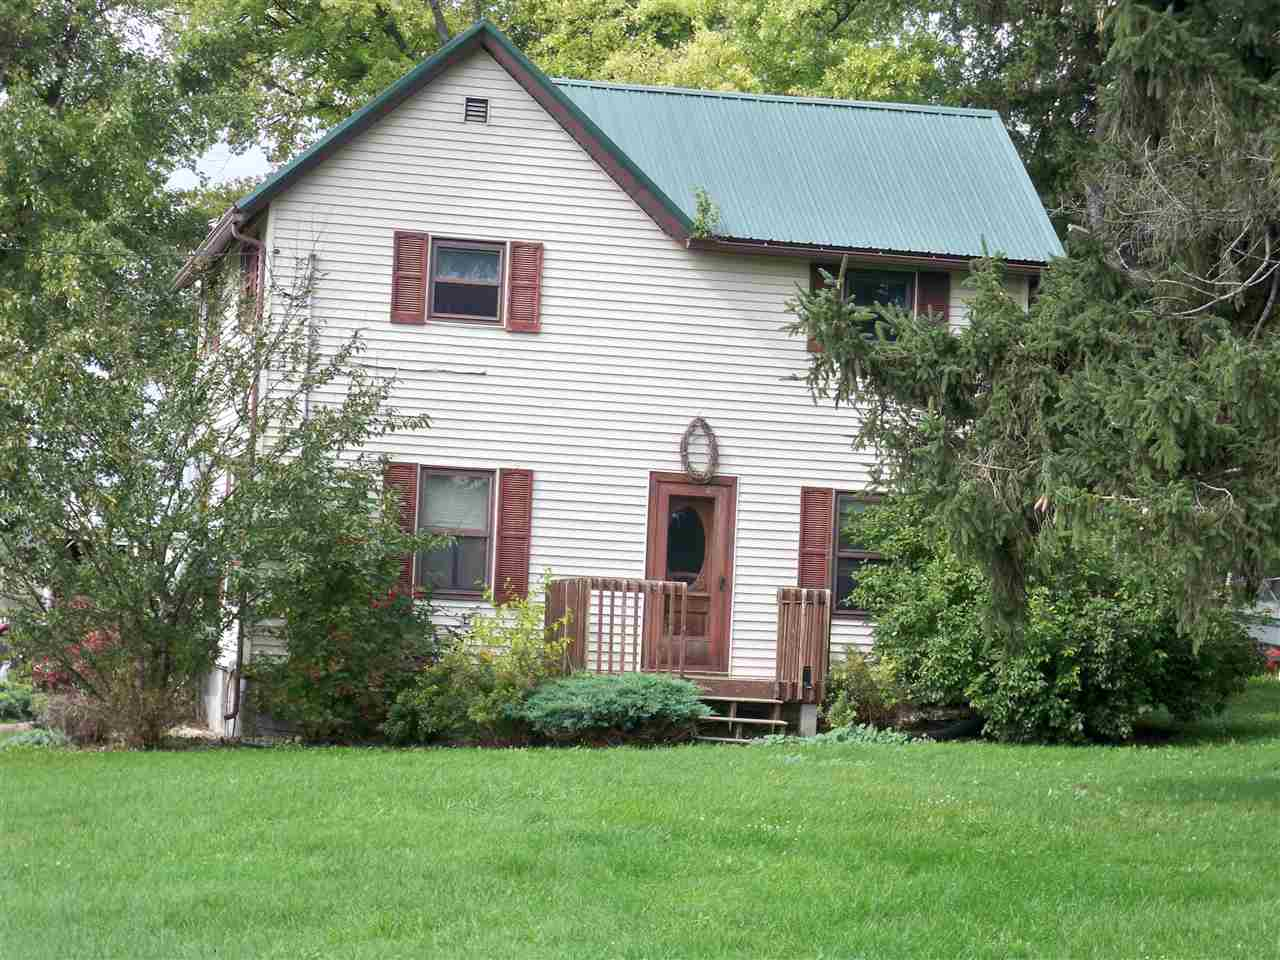 2502 Walters RD, Dodgeville, WI 53533